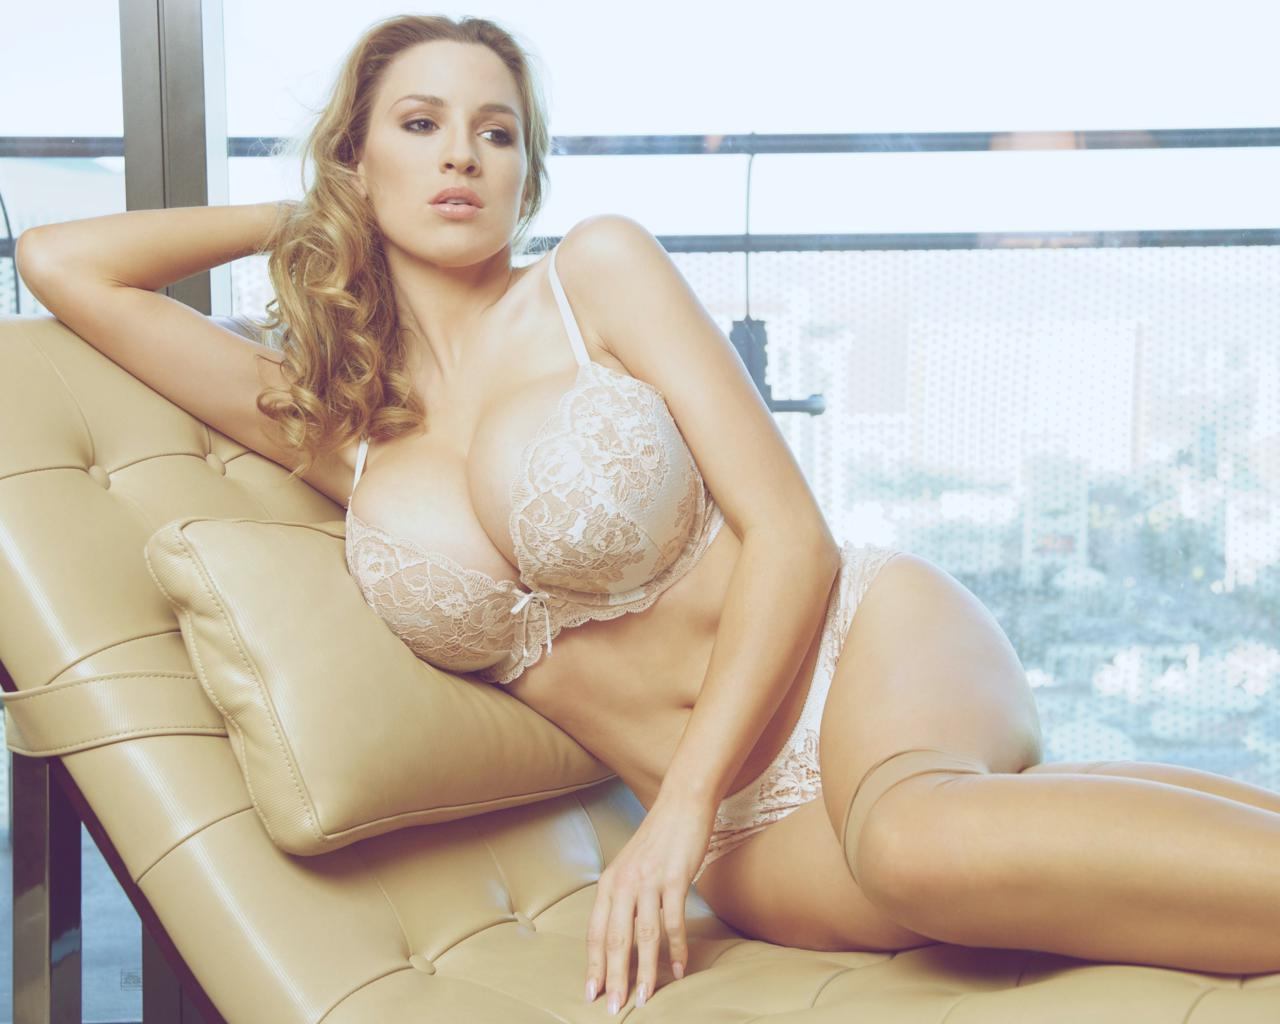 Jordan Carver Model Big Boobs Huge Tits Large Breasts Sexy